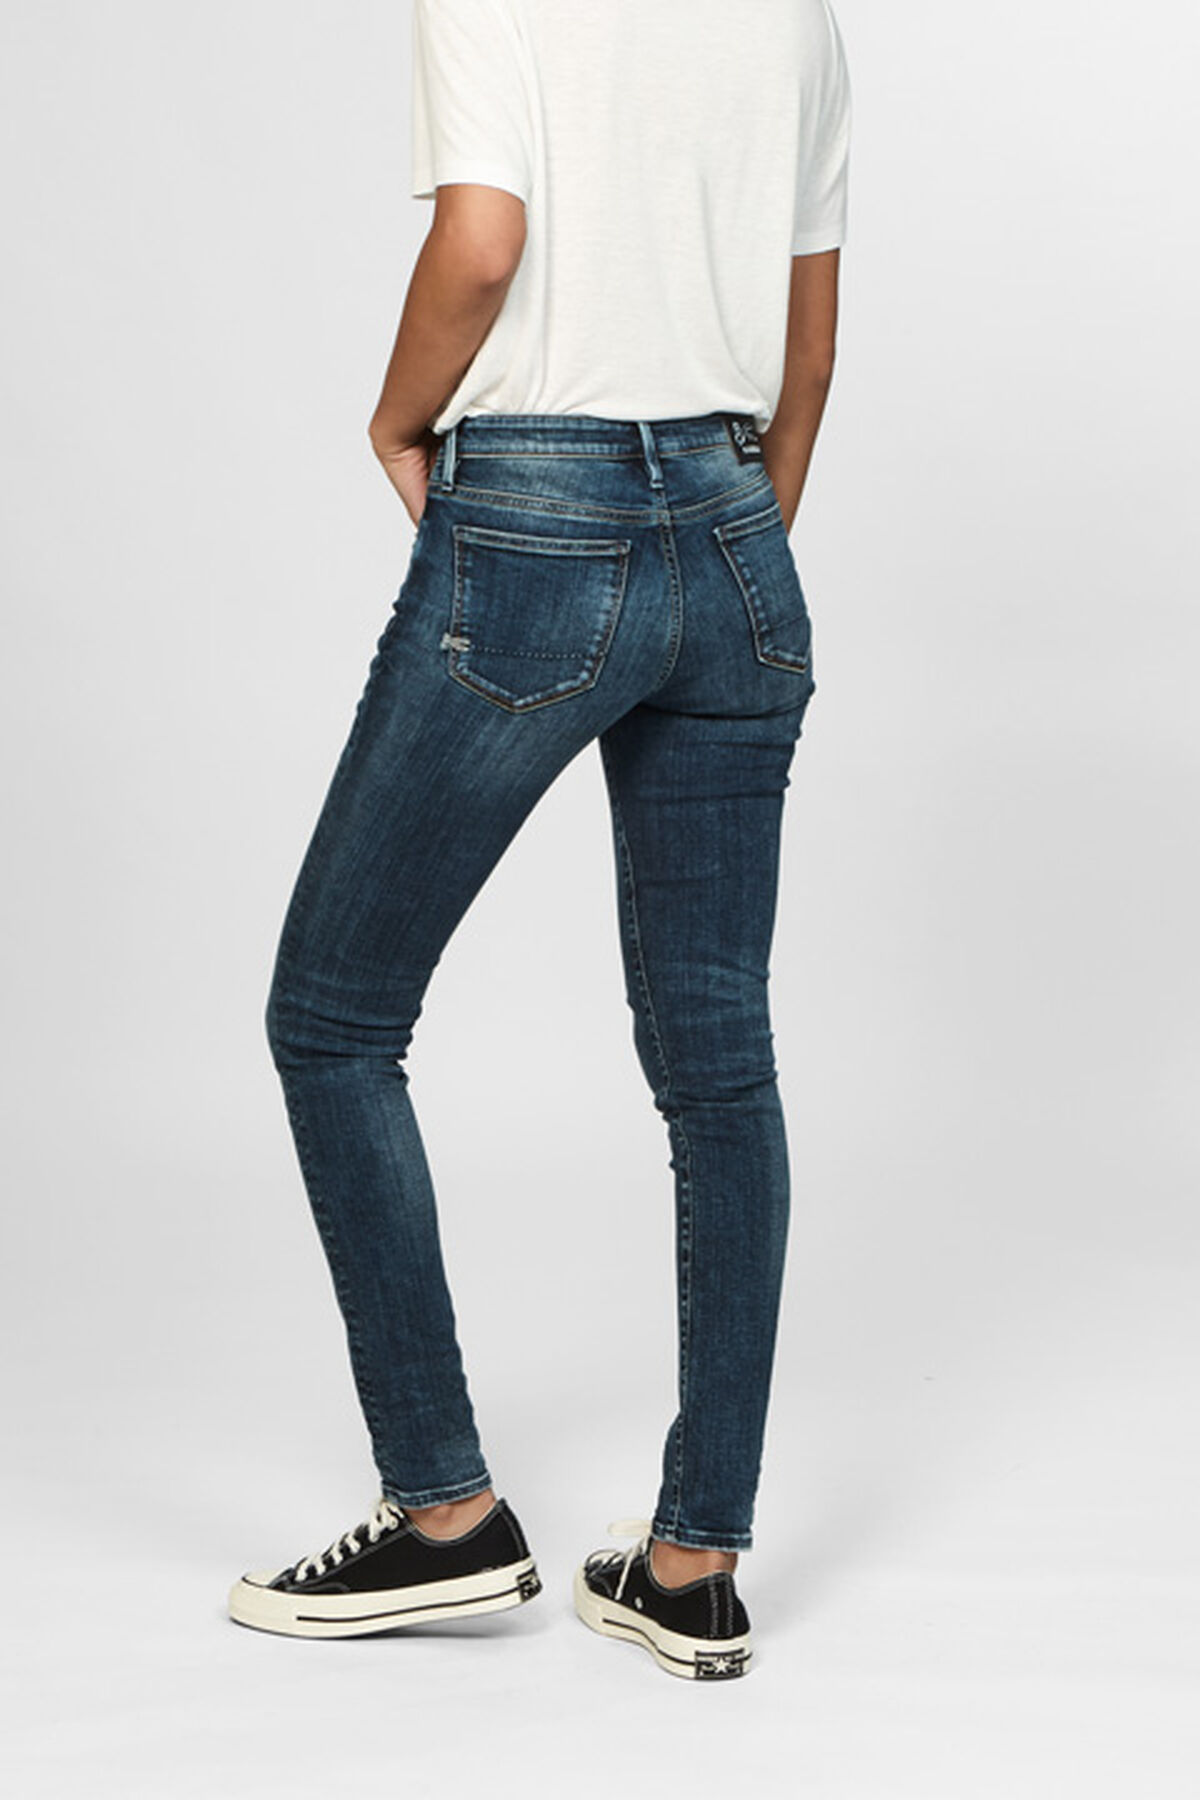 Sharp Skinny Fit Jeans - R